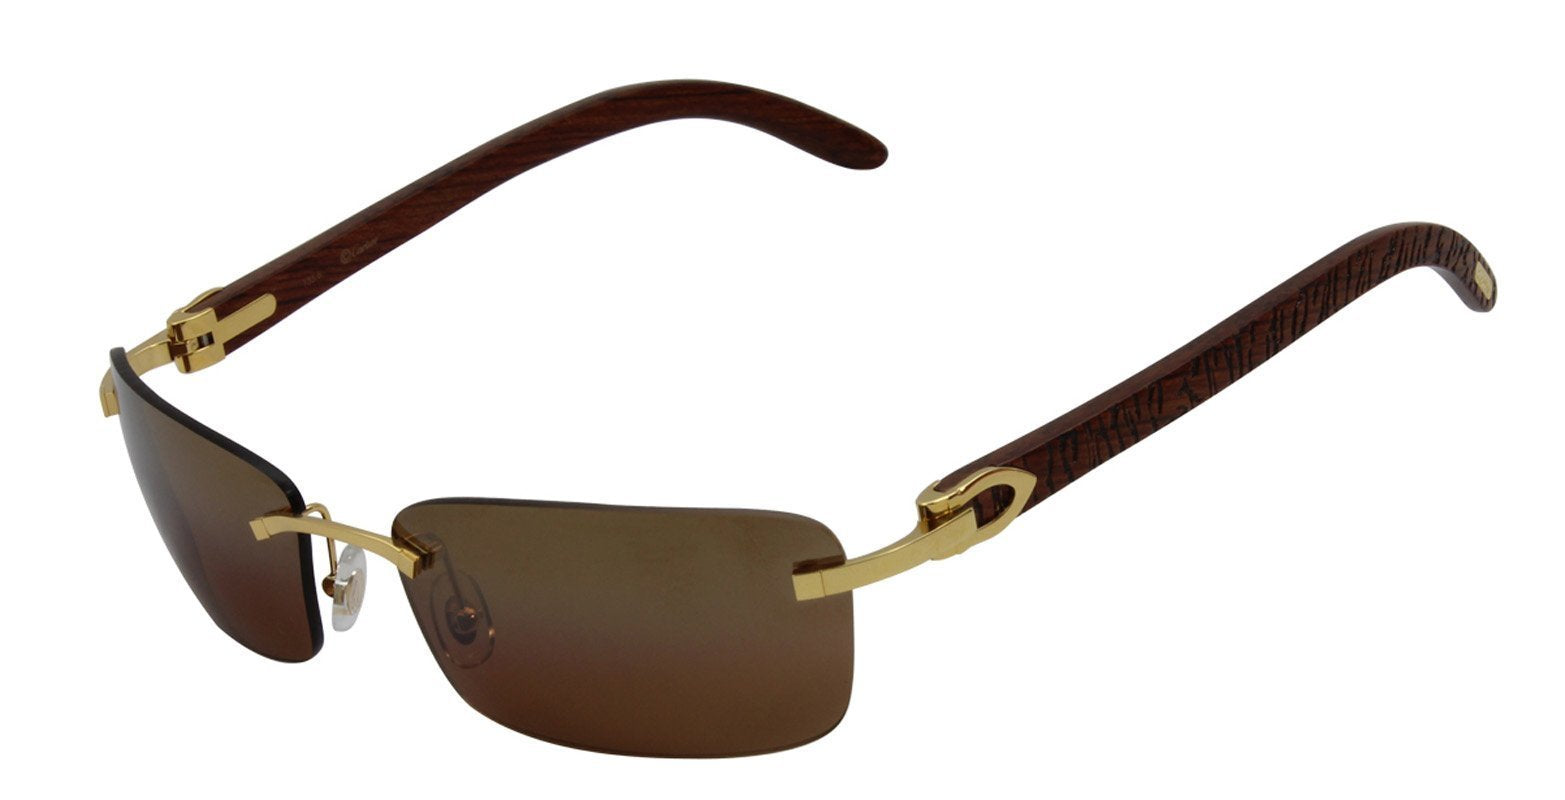 Cartier - C Decor Gold Rimless Men Sunglasses - 58mm-Sunglasses-Designer Eyes